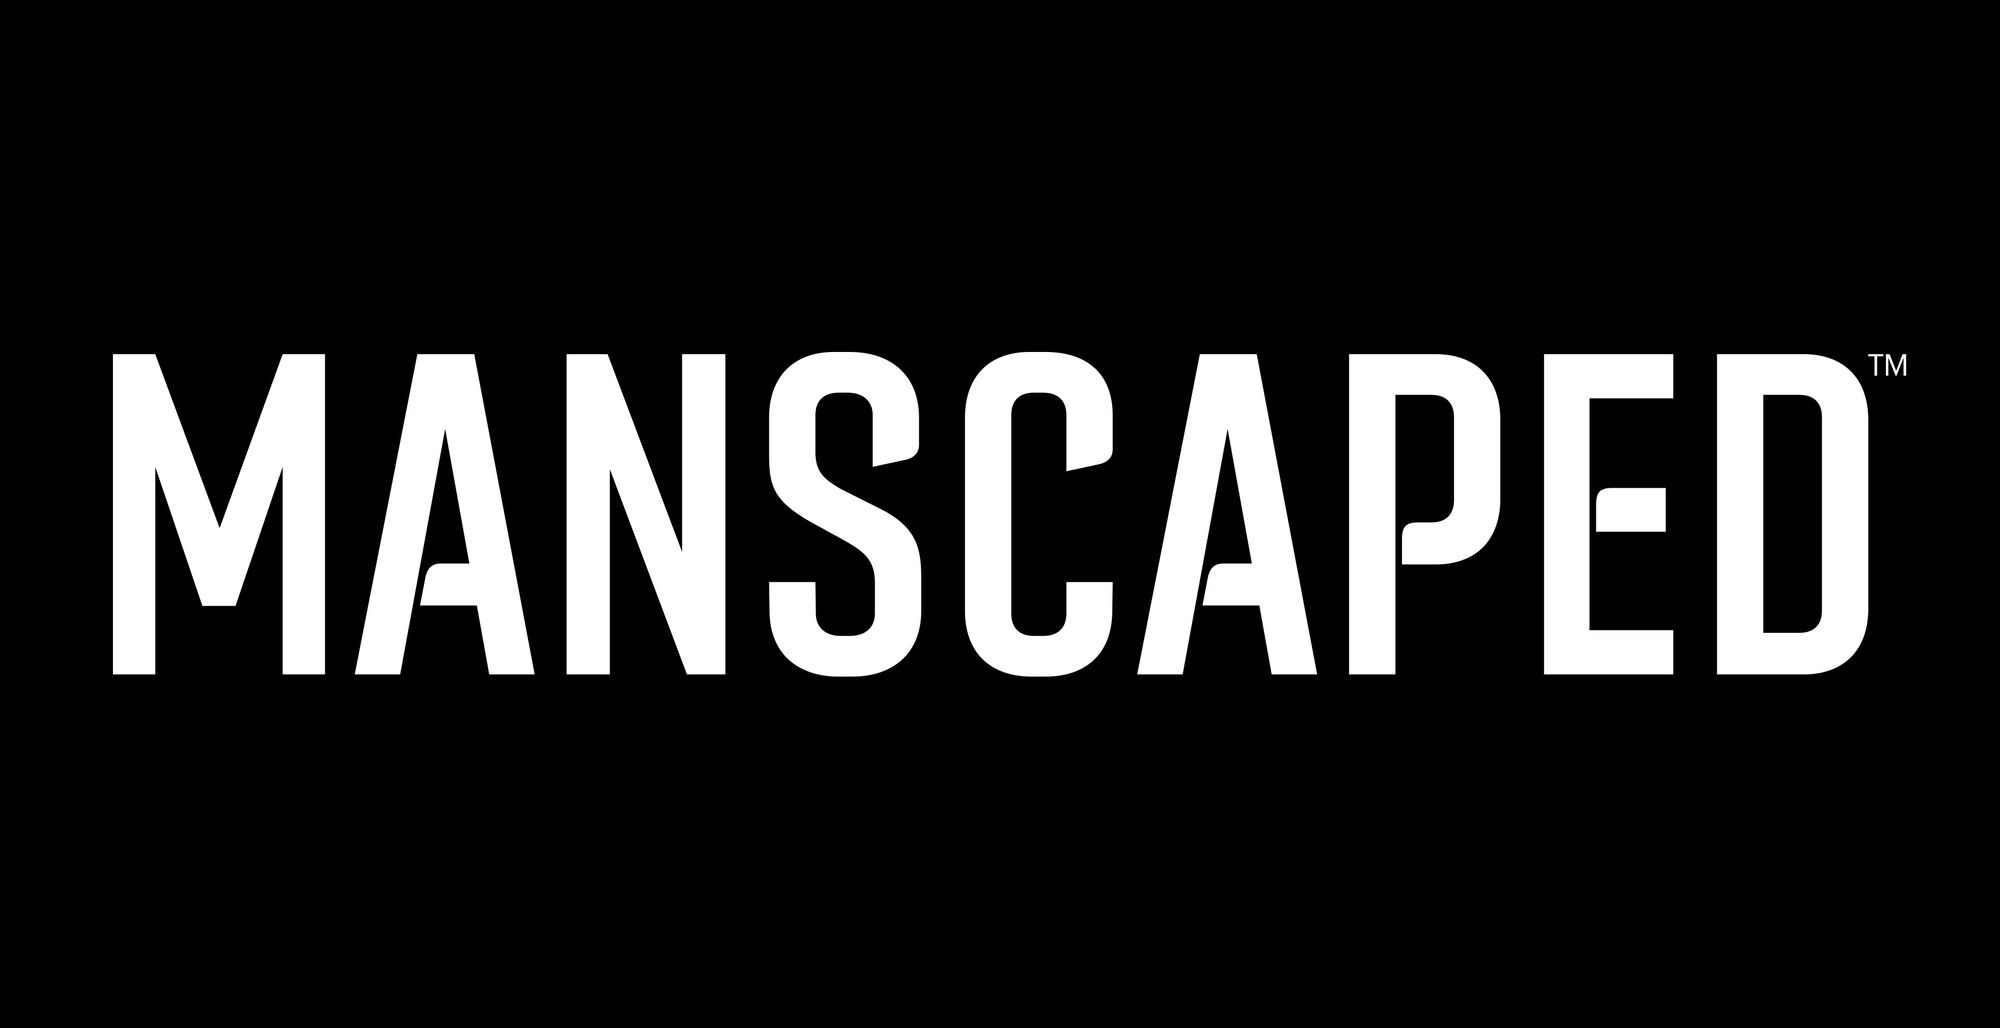 How To Use The Manscaped™ Crop Cleanser®